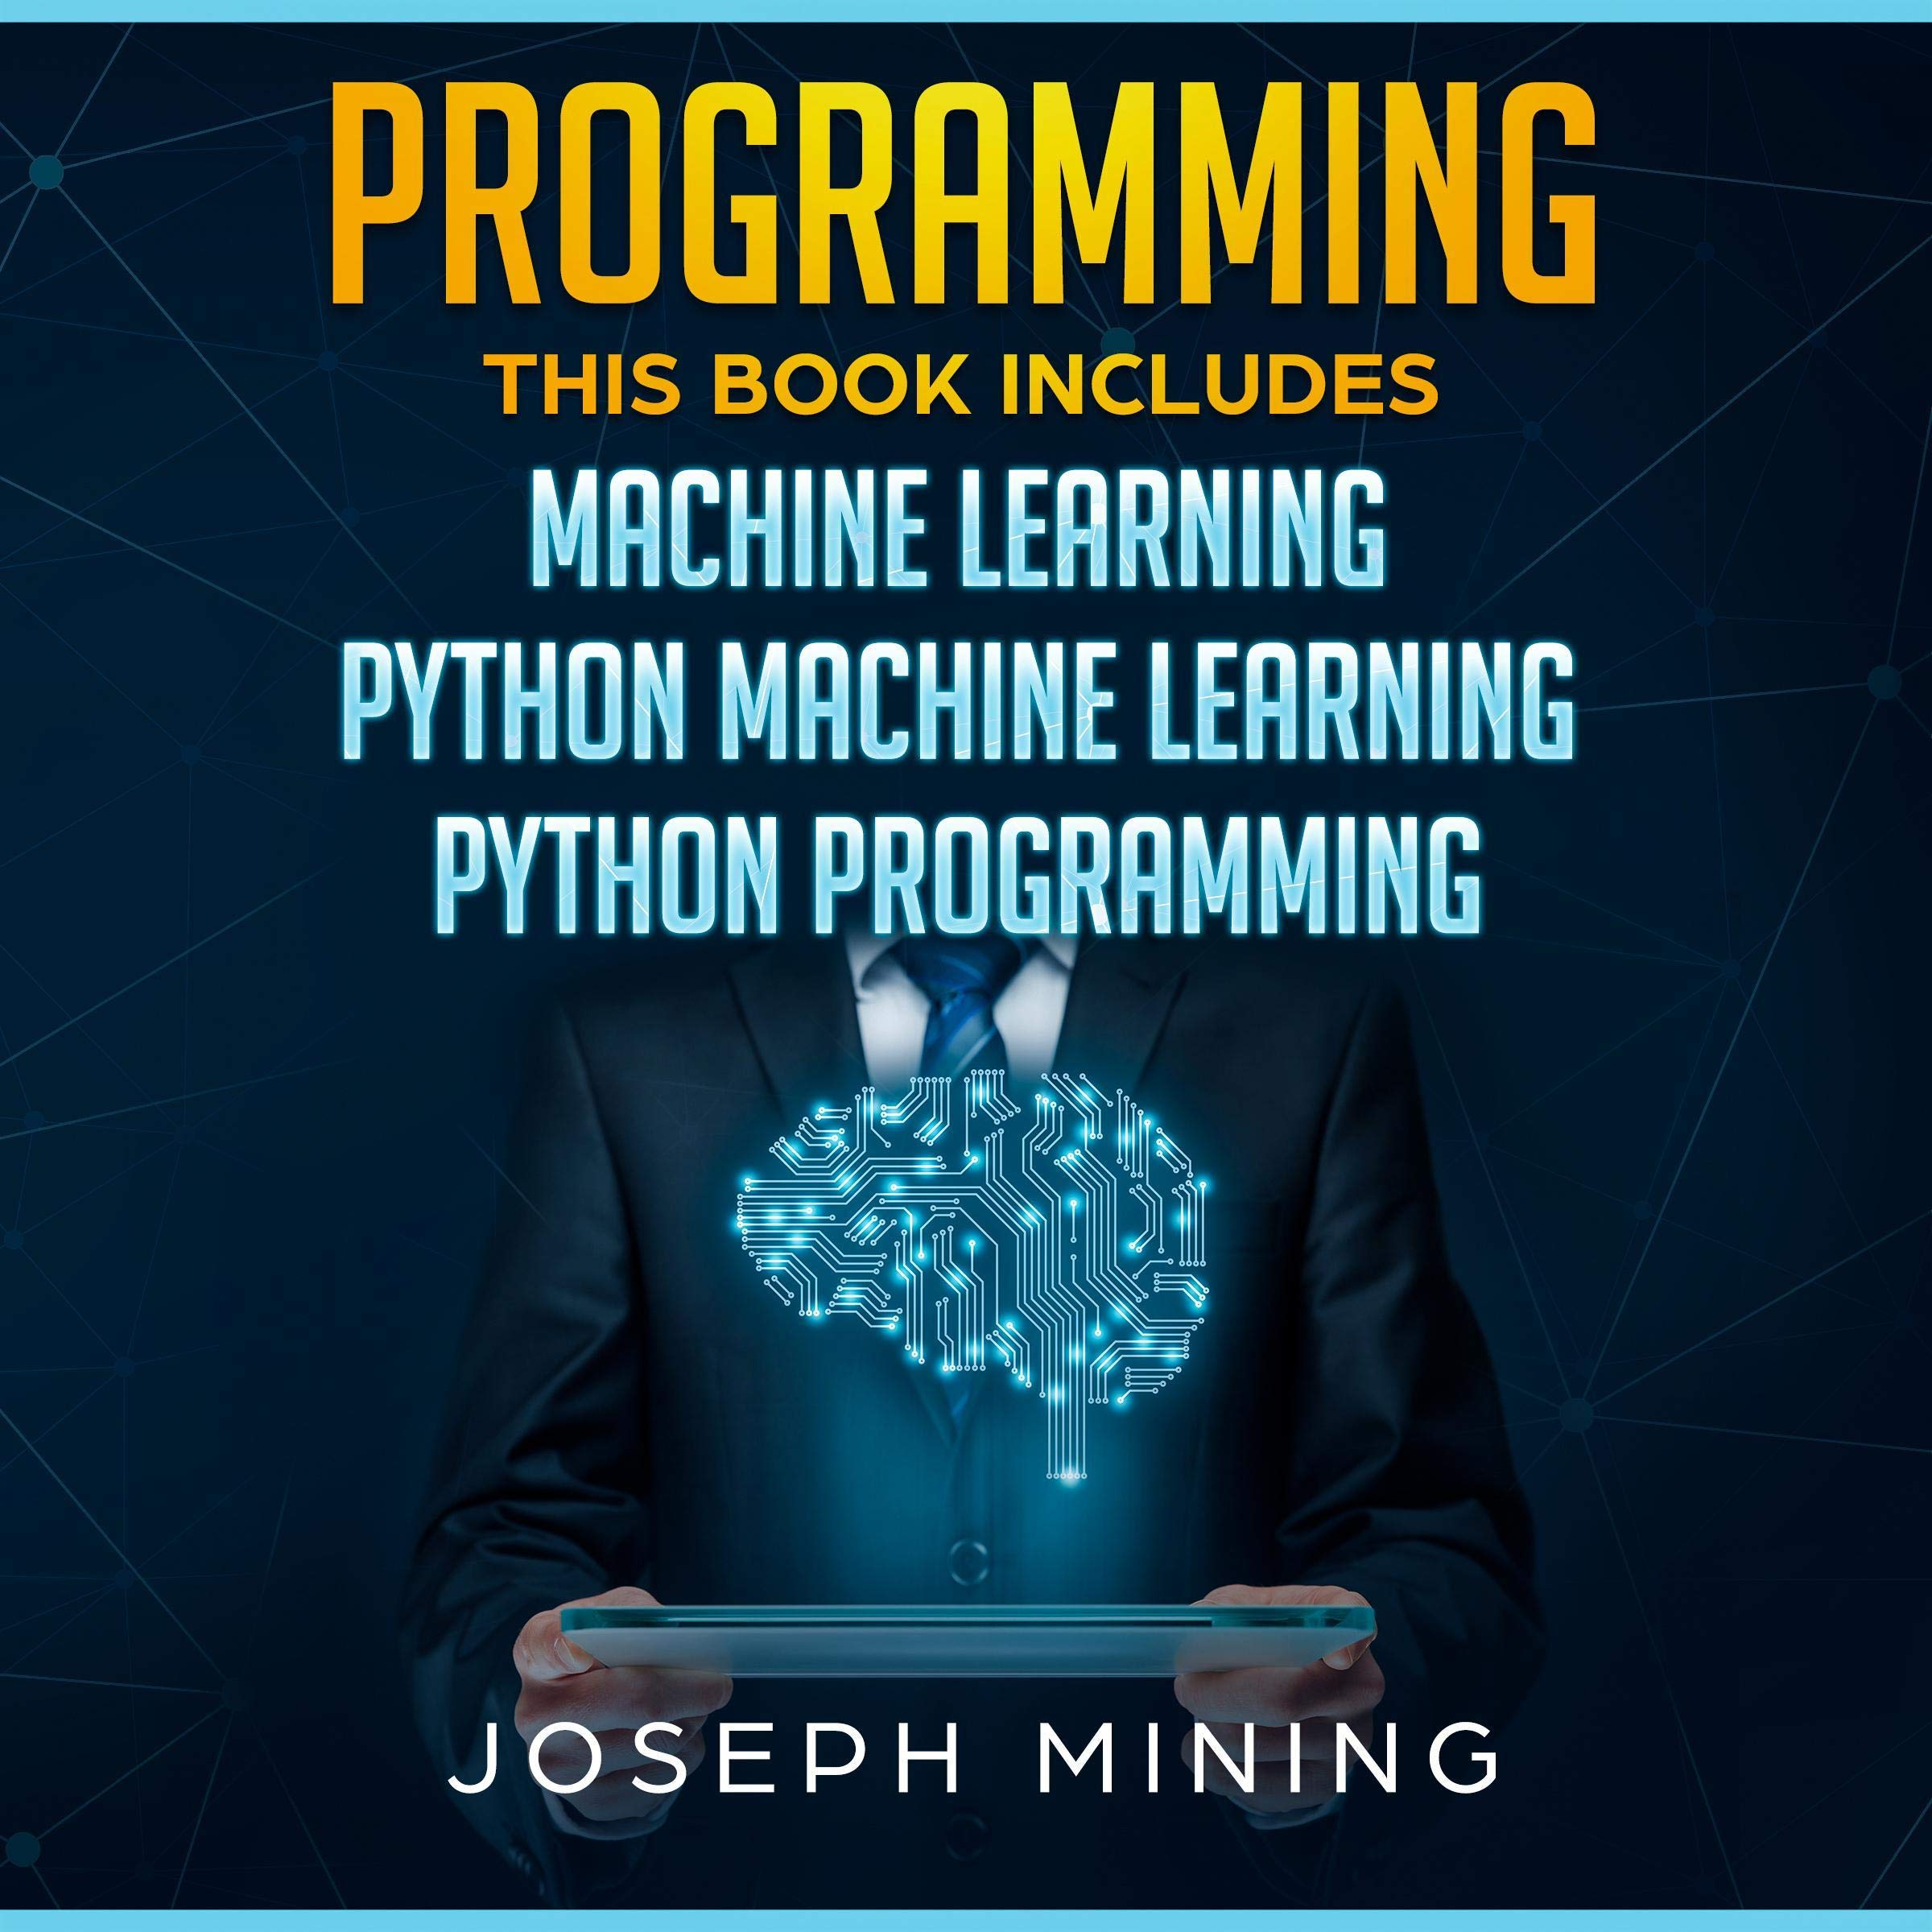 Programming: This Book Includes: Machine Learning + Python Machine Learning + Python Programming